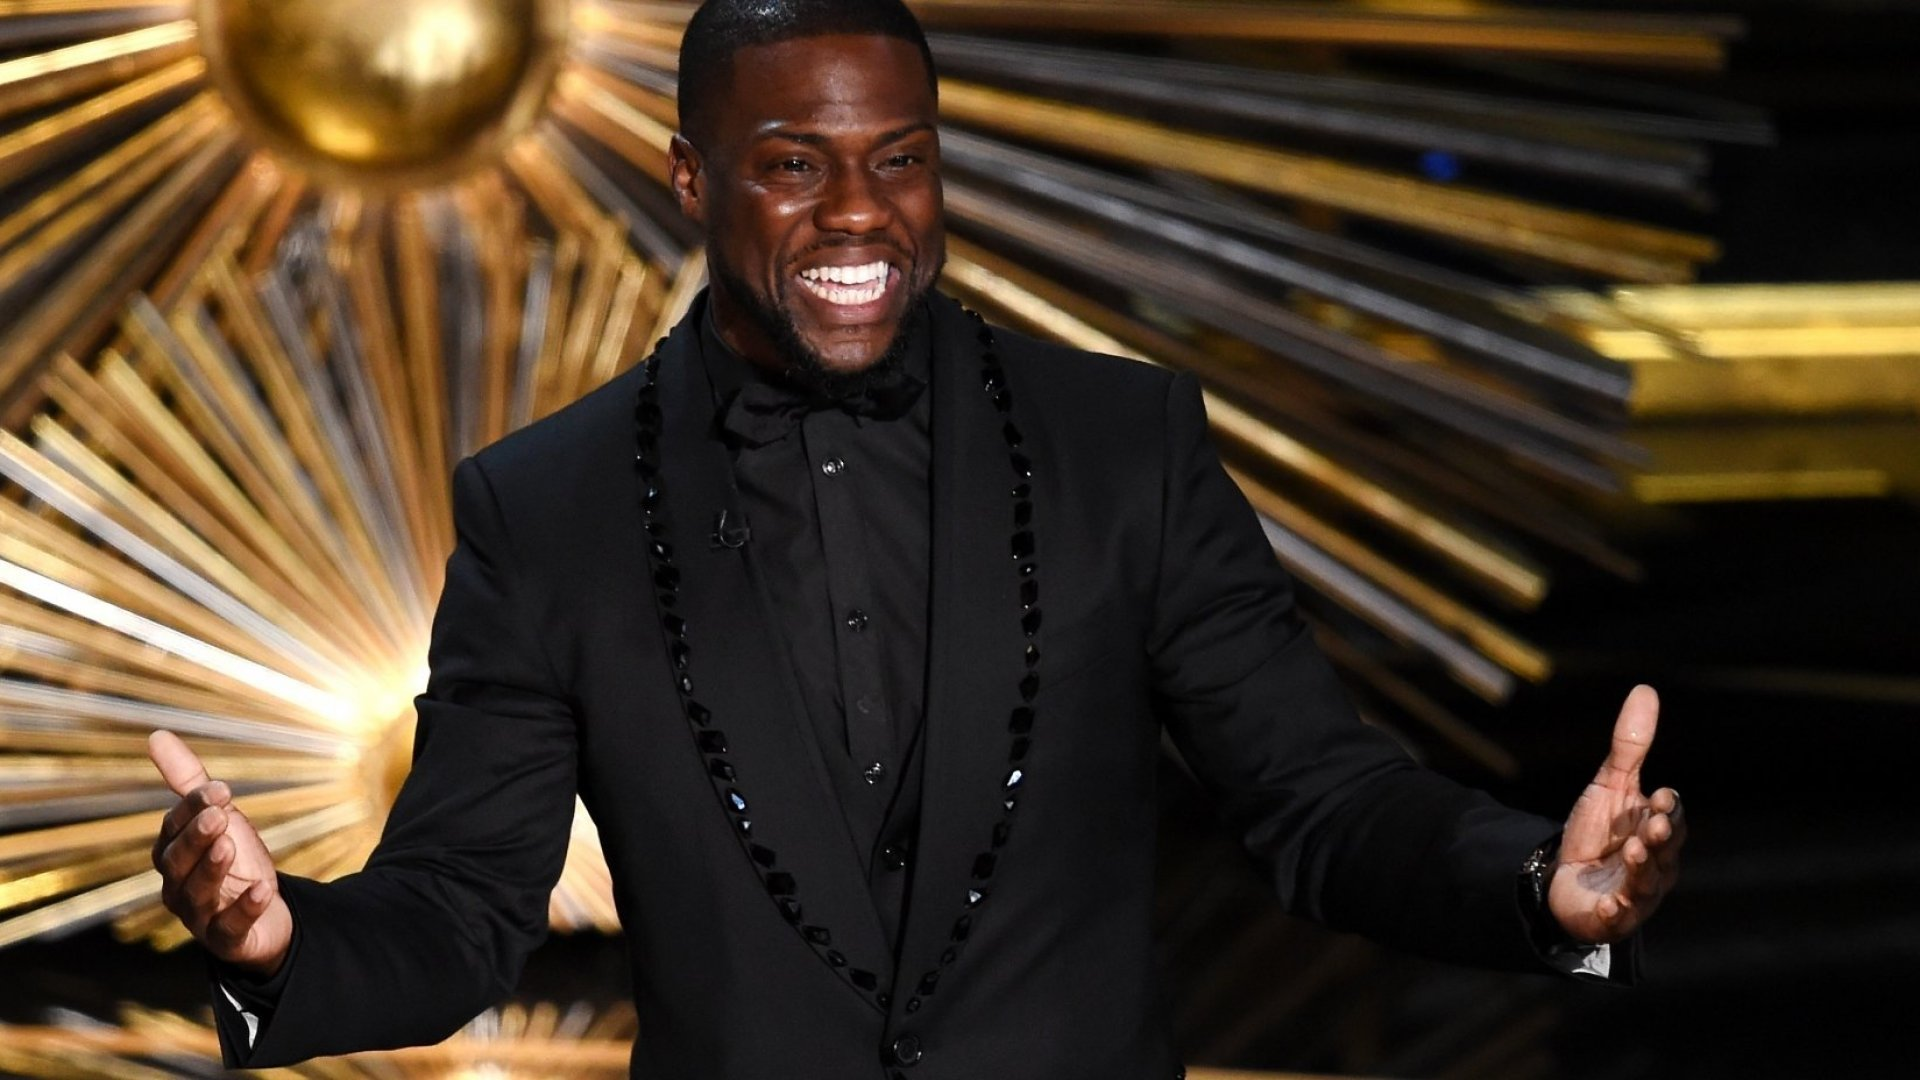 Meet the Startup Behind Kevin Hart's New App